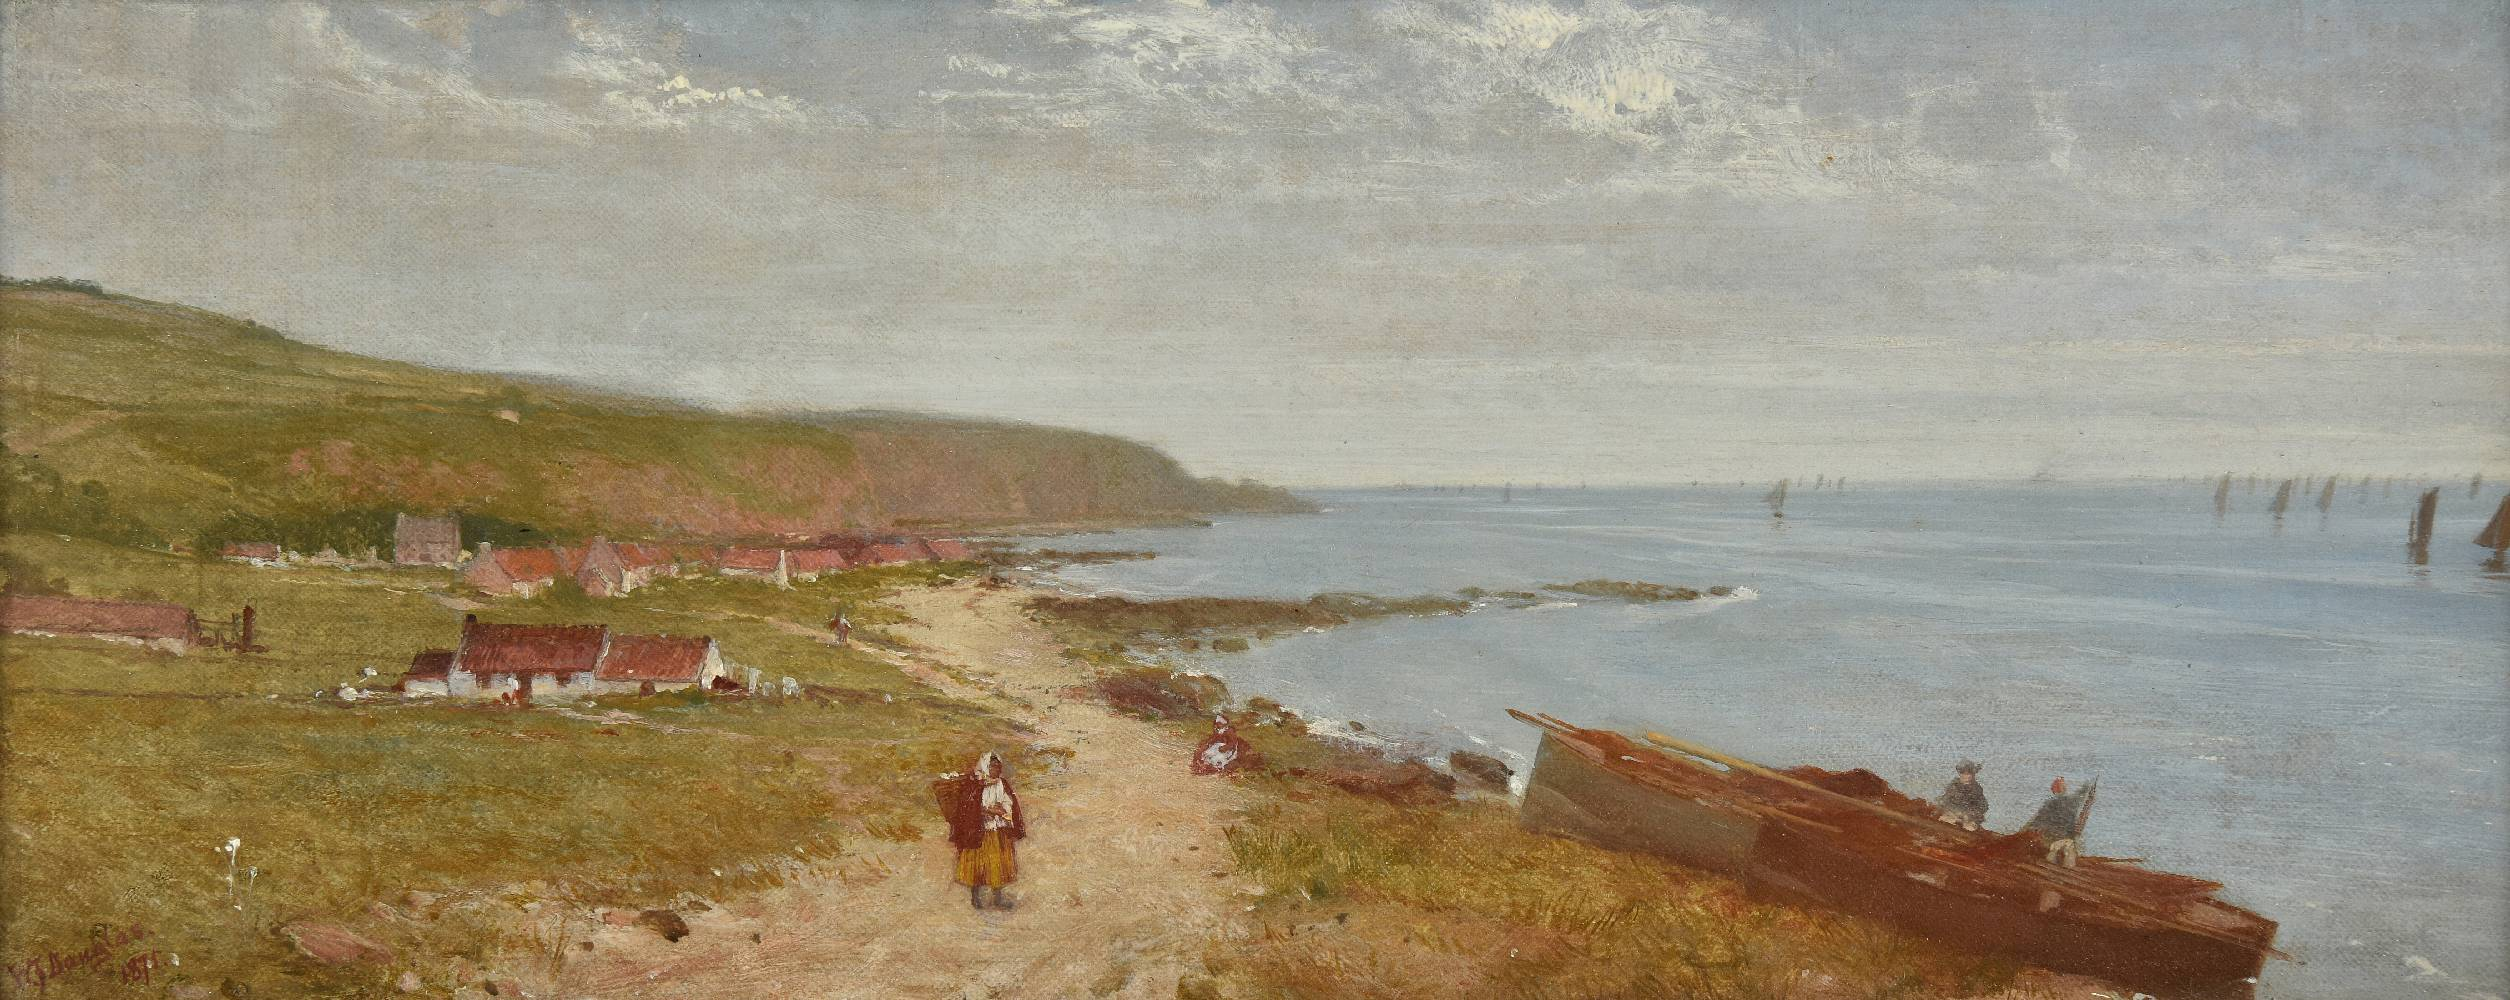 Lot 33 - *Douglas (William Fettes, 1822-1891). On the Kincardine Shore, 1875, oil on canvas, signed and dated